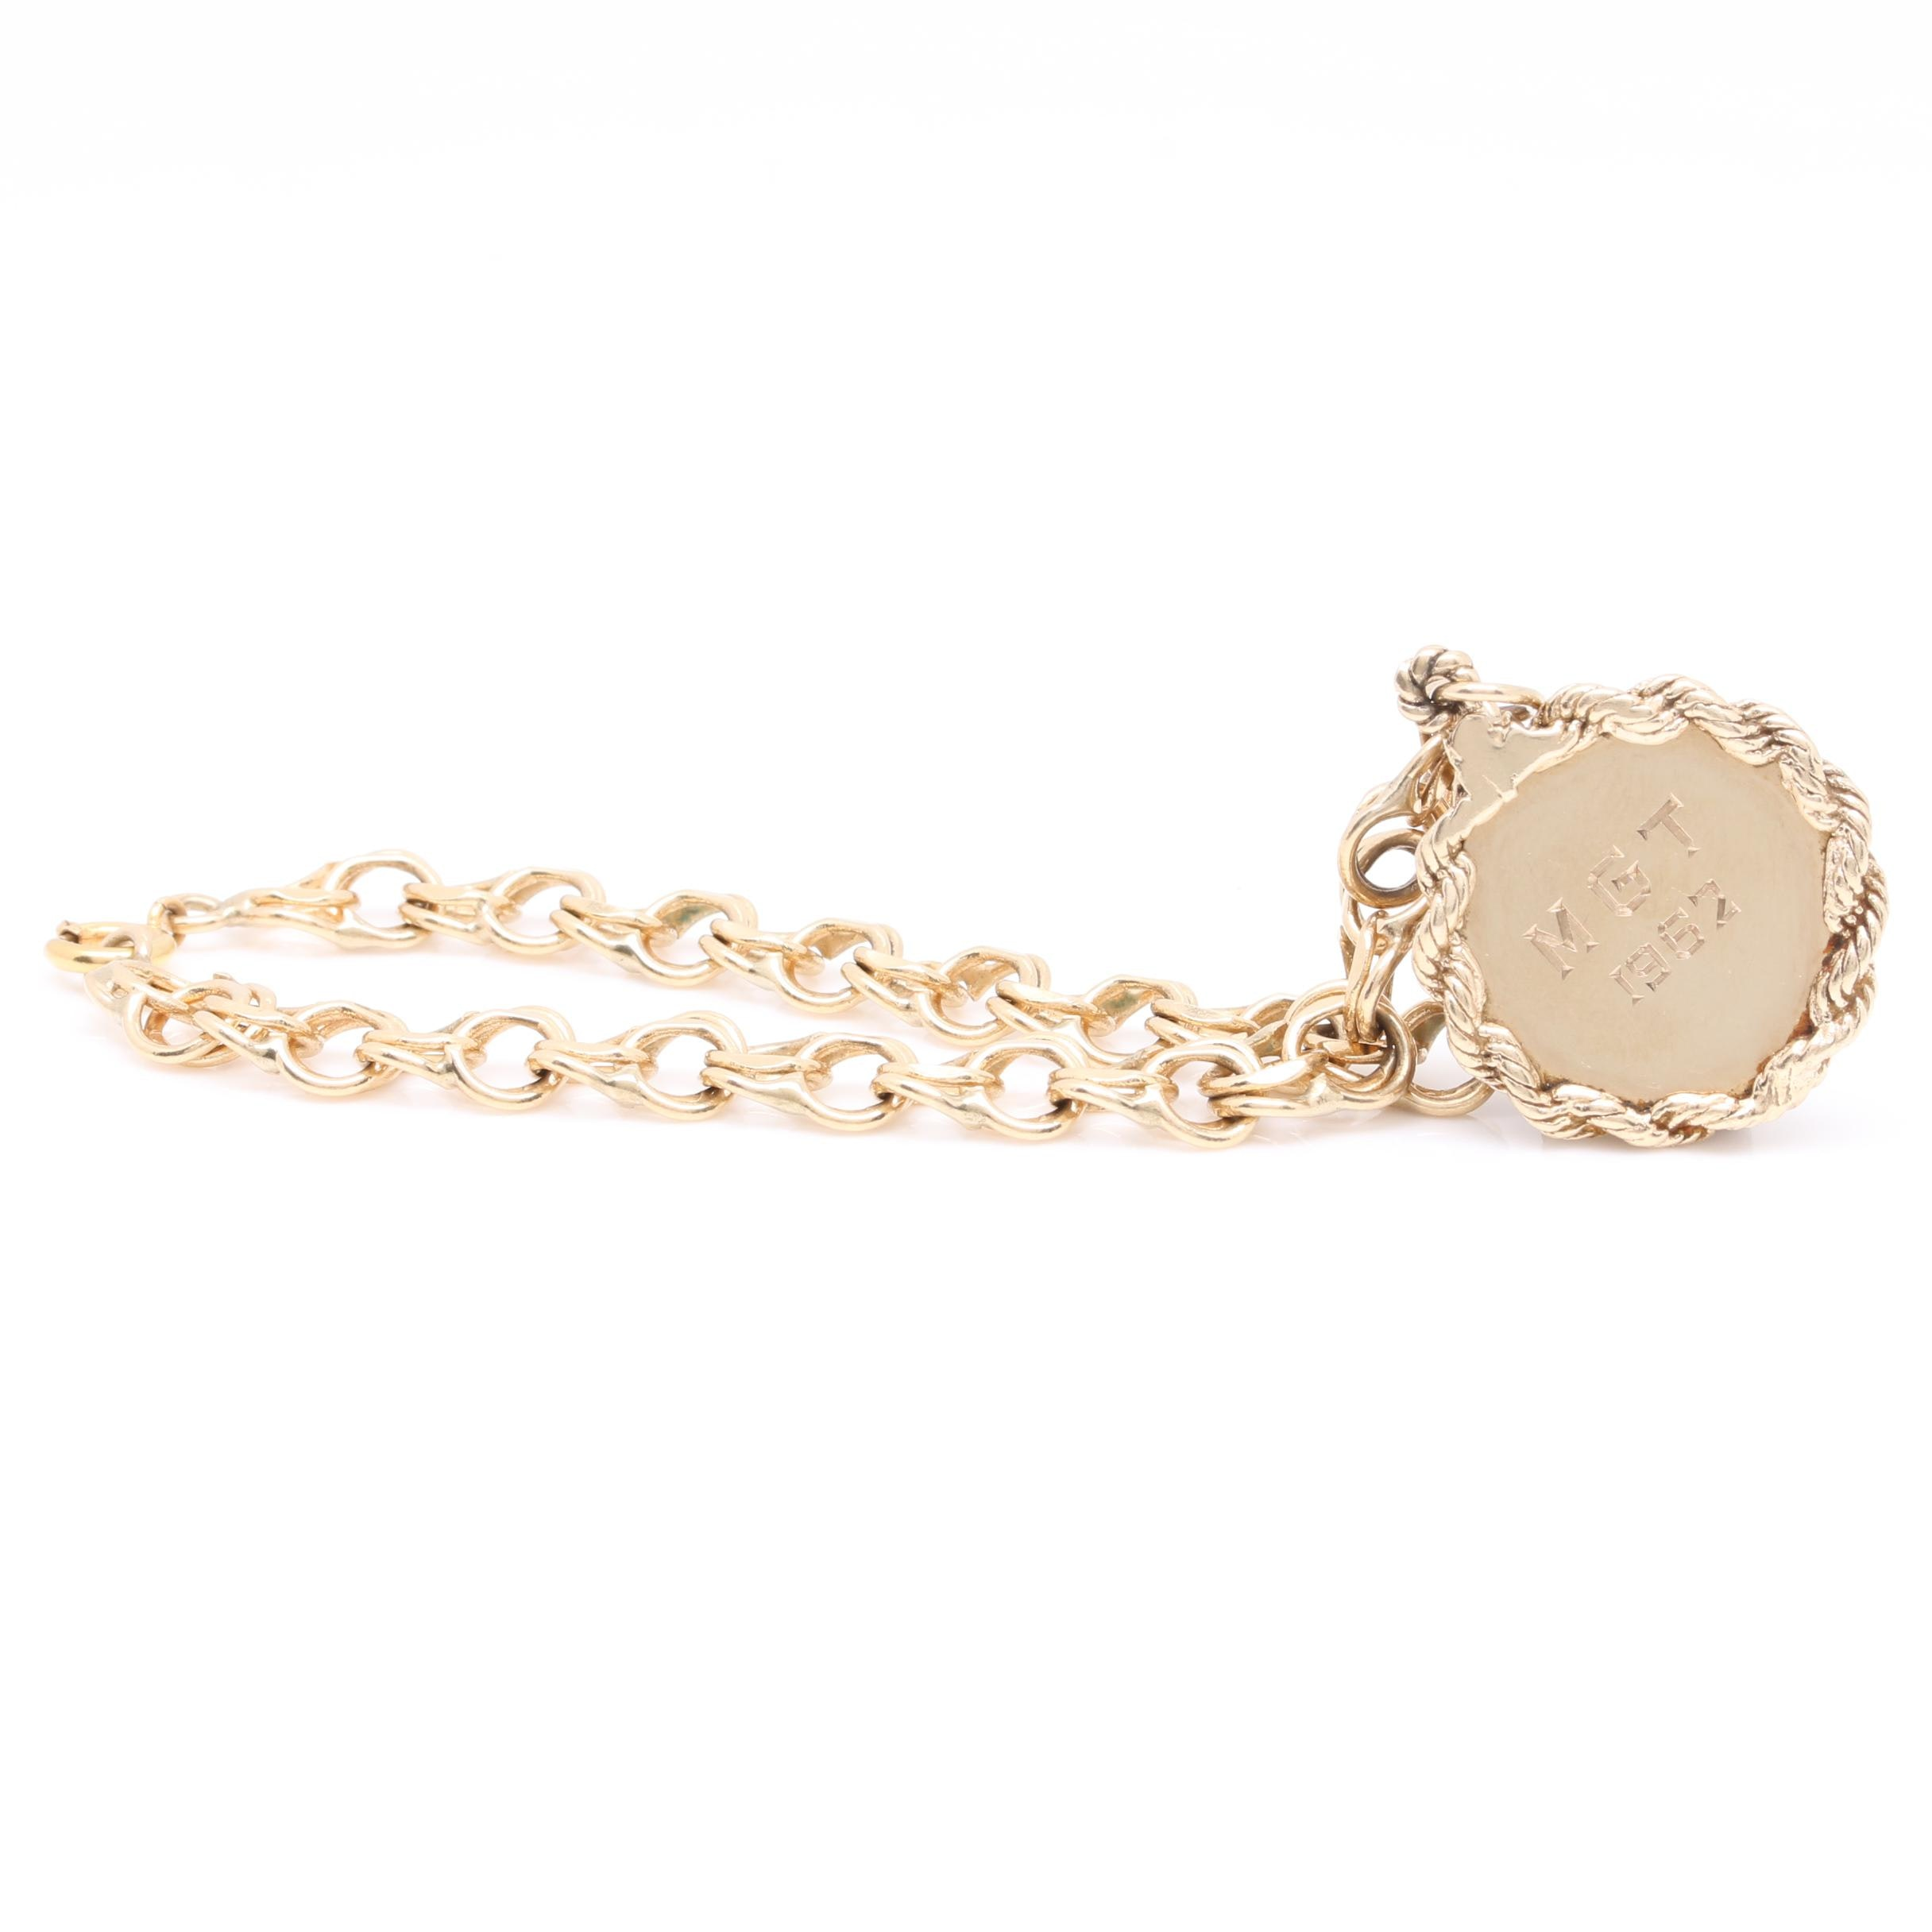 14K Yellow Gold Bracelet with Disc Charm